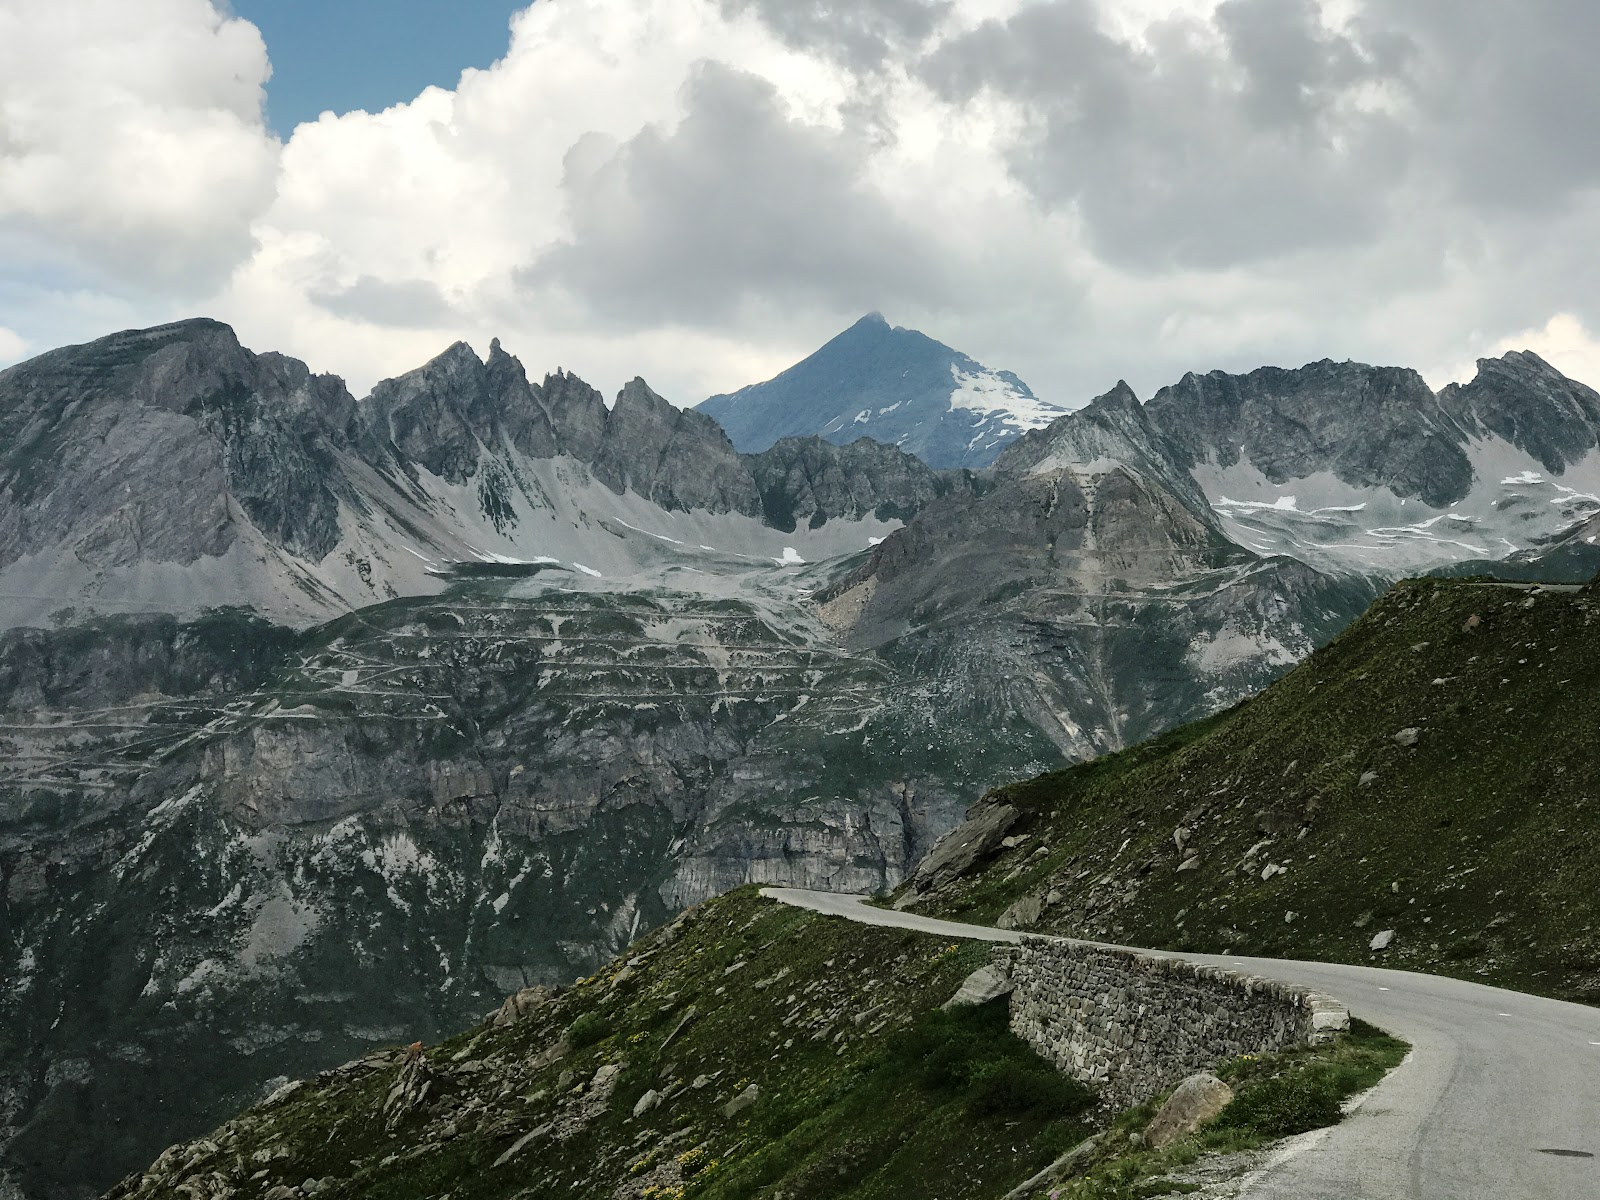 Cycling one of the best bike climbs in Europe - Col de L'Iseran from Val d'Isère - quarry, road, mountains, clouds